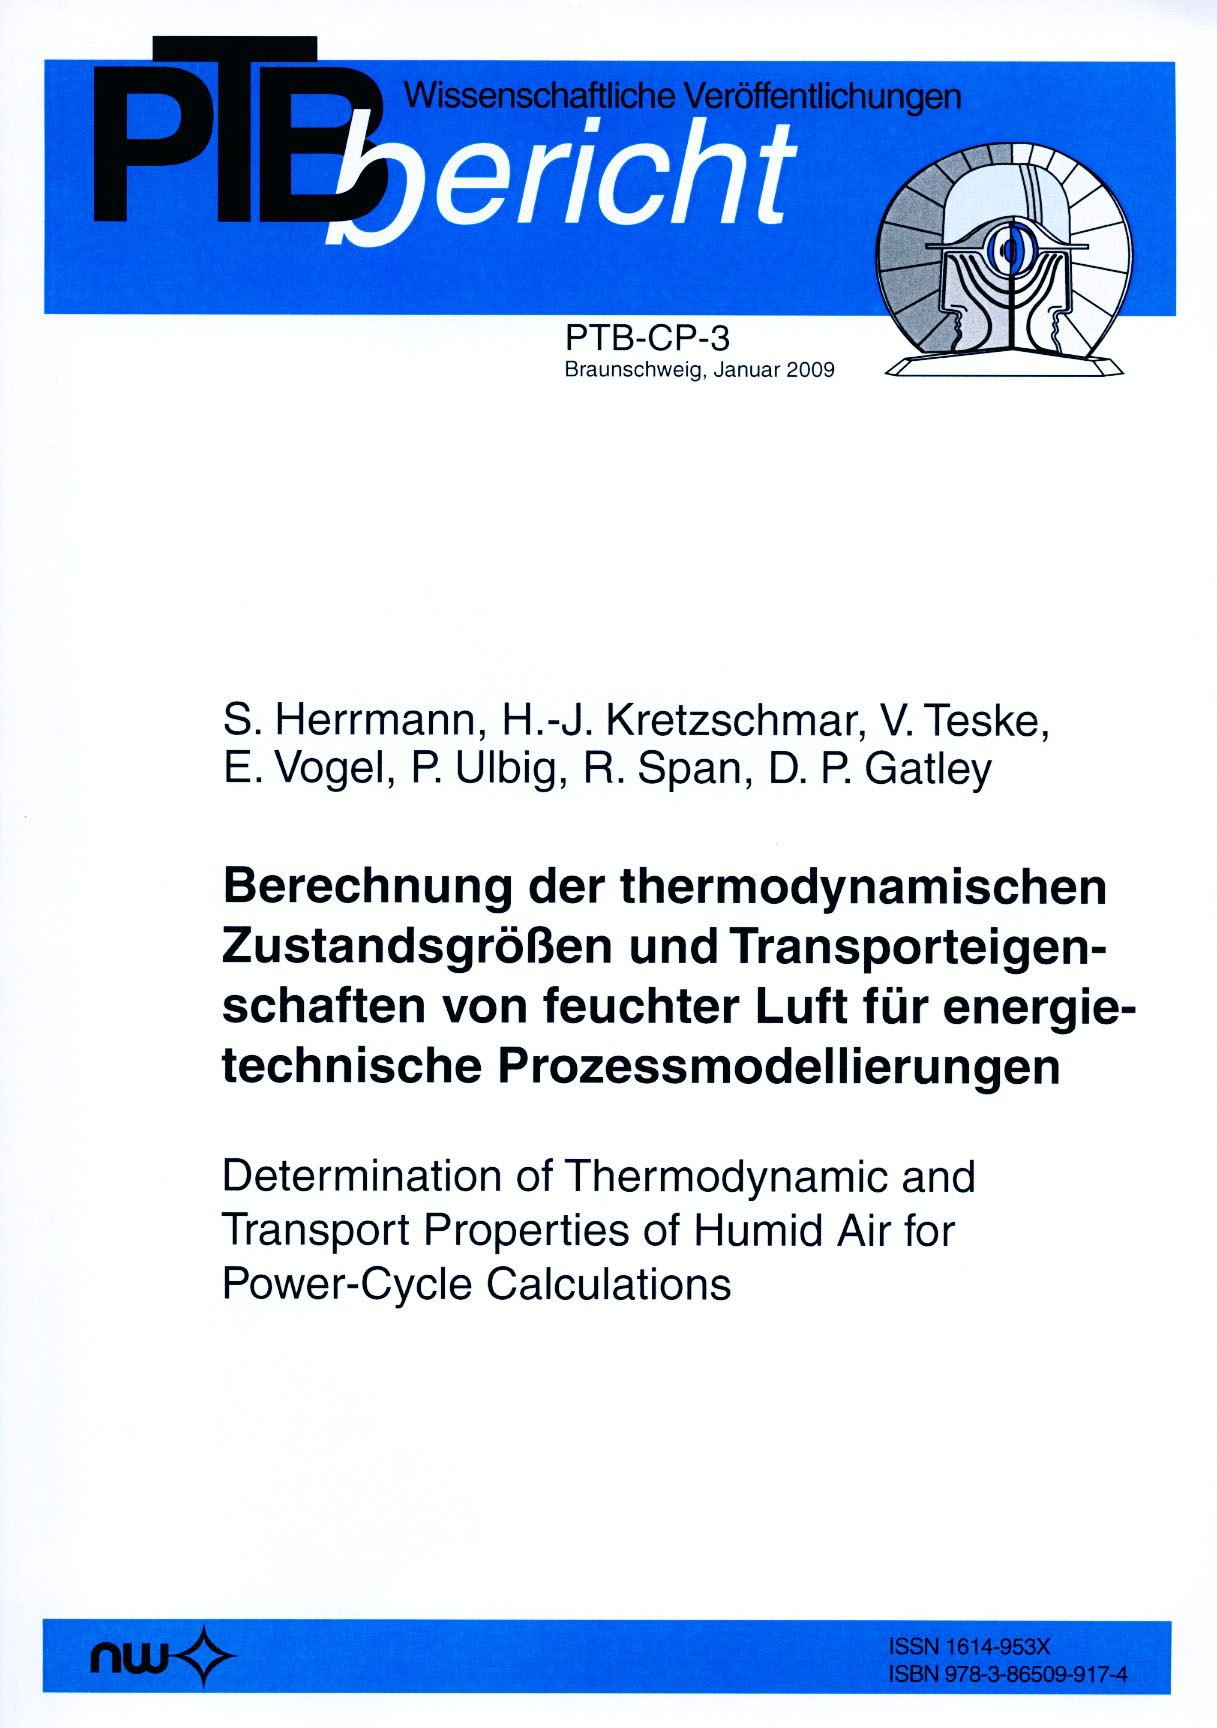 Determination of Thermodynamic and Transport Properties of Humid Air for Power-Cycle Calculations